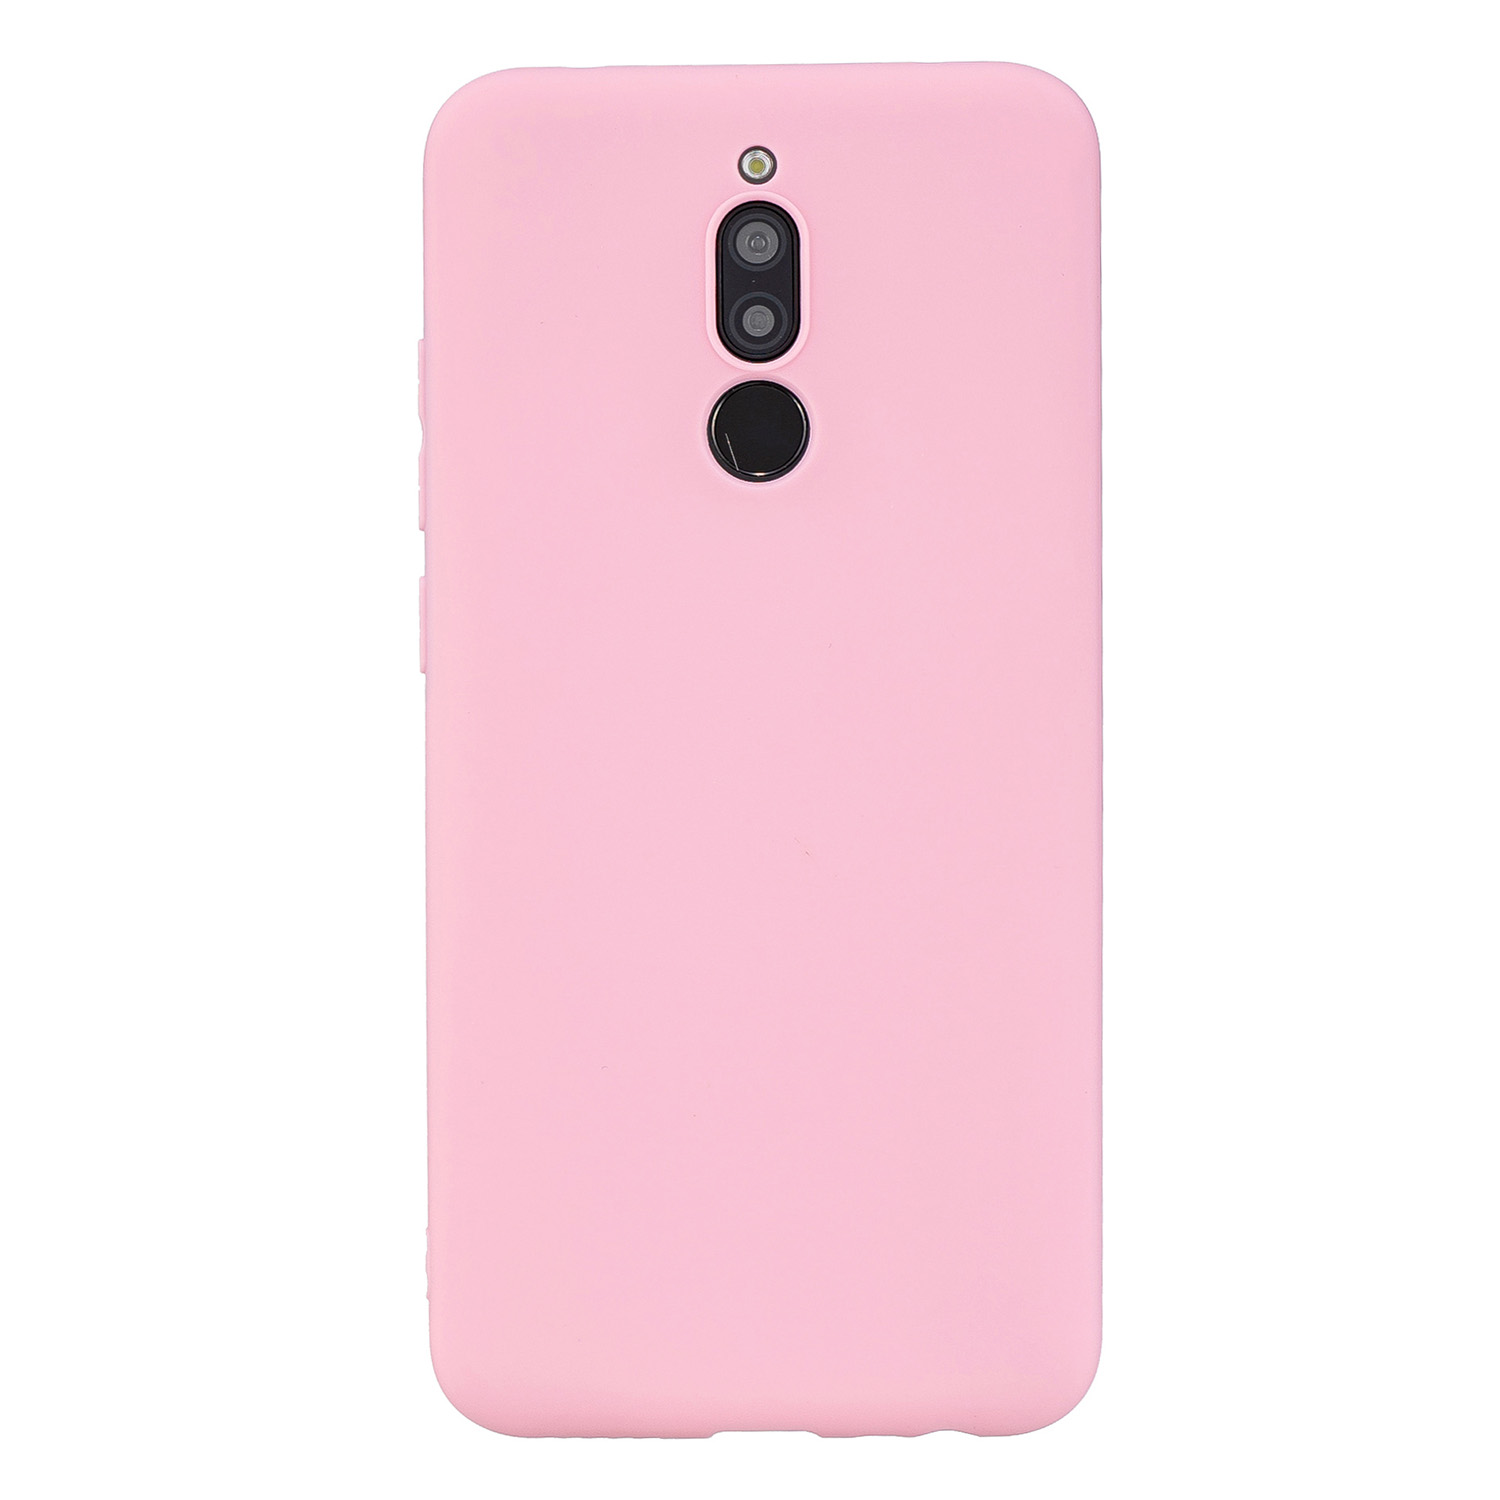 For Redmi 8 8A note 8T TPU Back Cover Soft Candy Color Frosted Surface Shockproof TPU Mobile Phone Protective Case 5